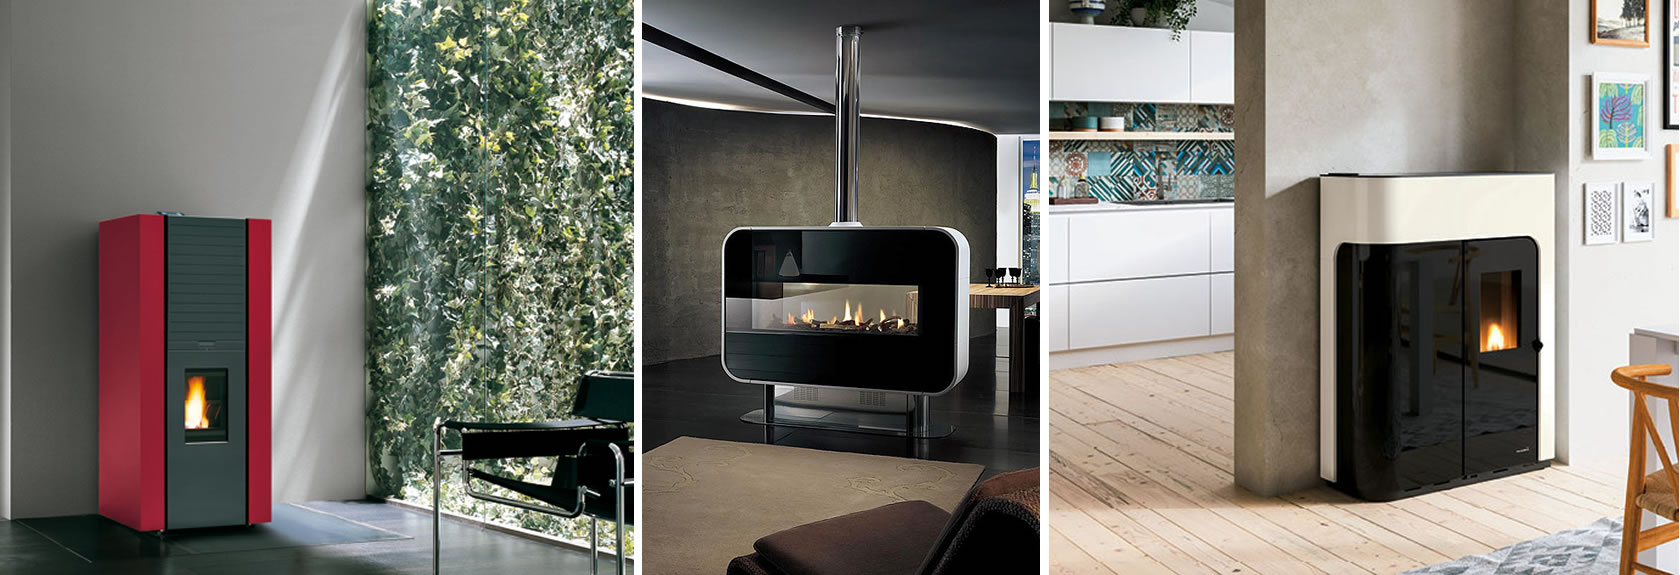 Stylish heating for your home